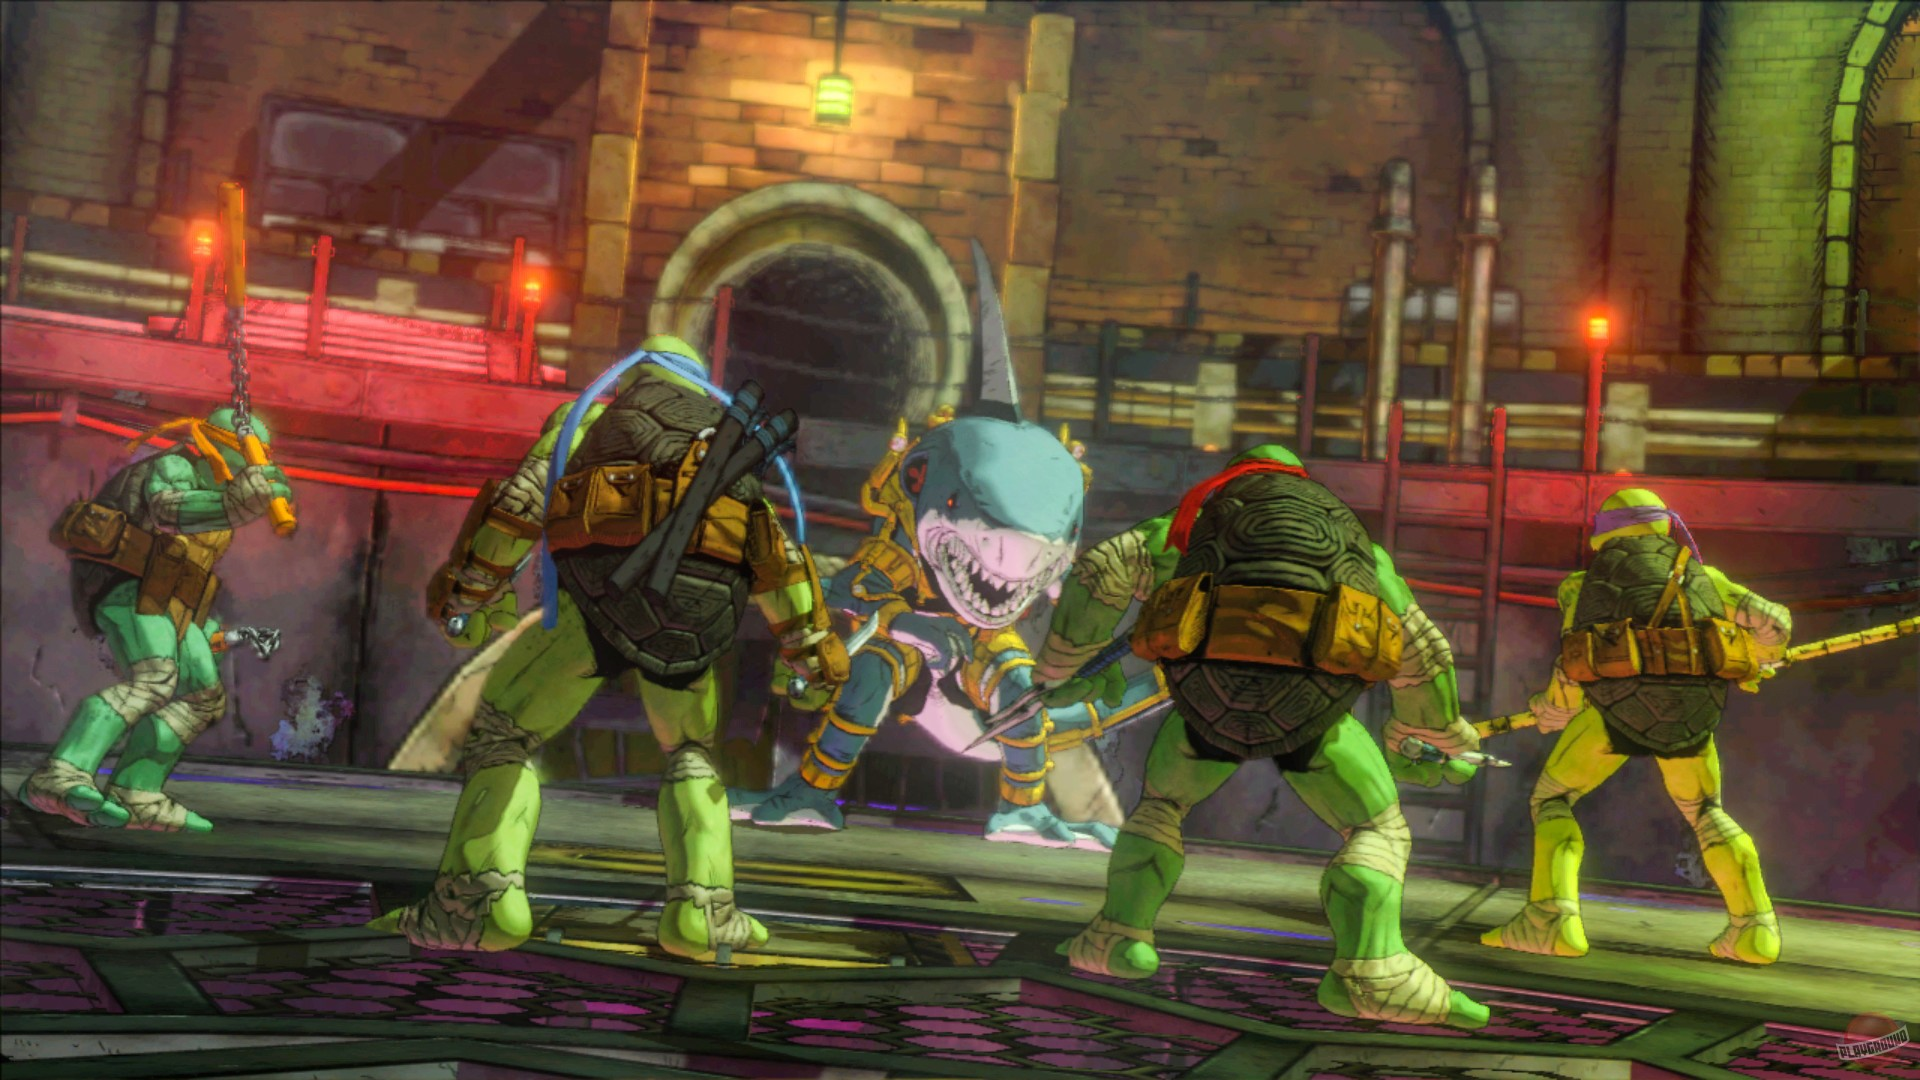 Watch Free Teenage Mutant Ninja Turtles Full EpisodesTMNT